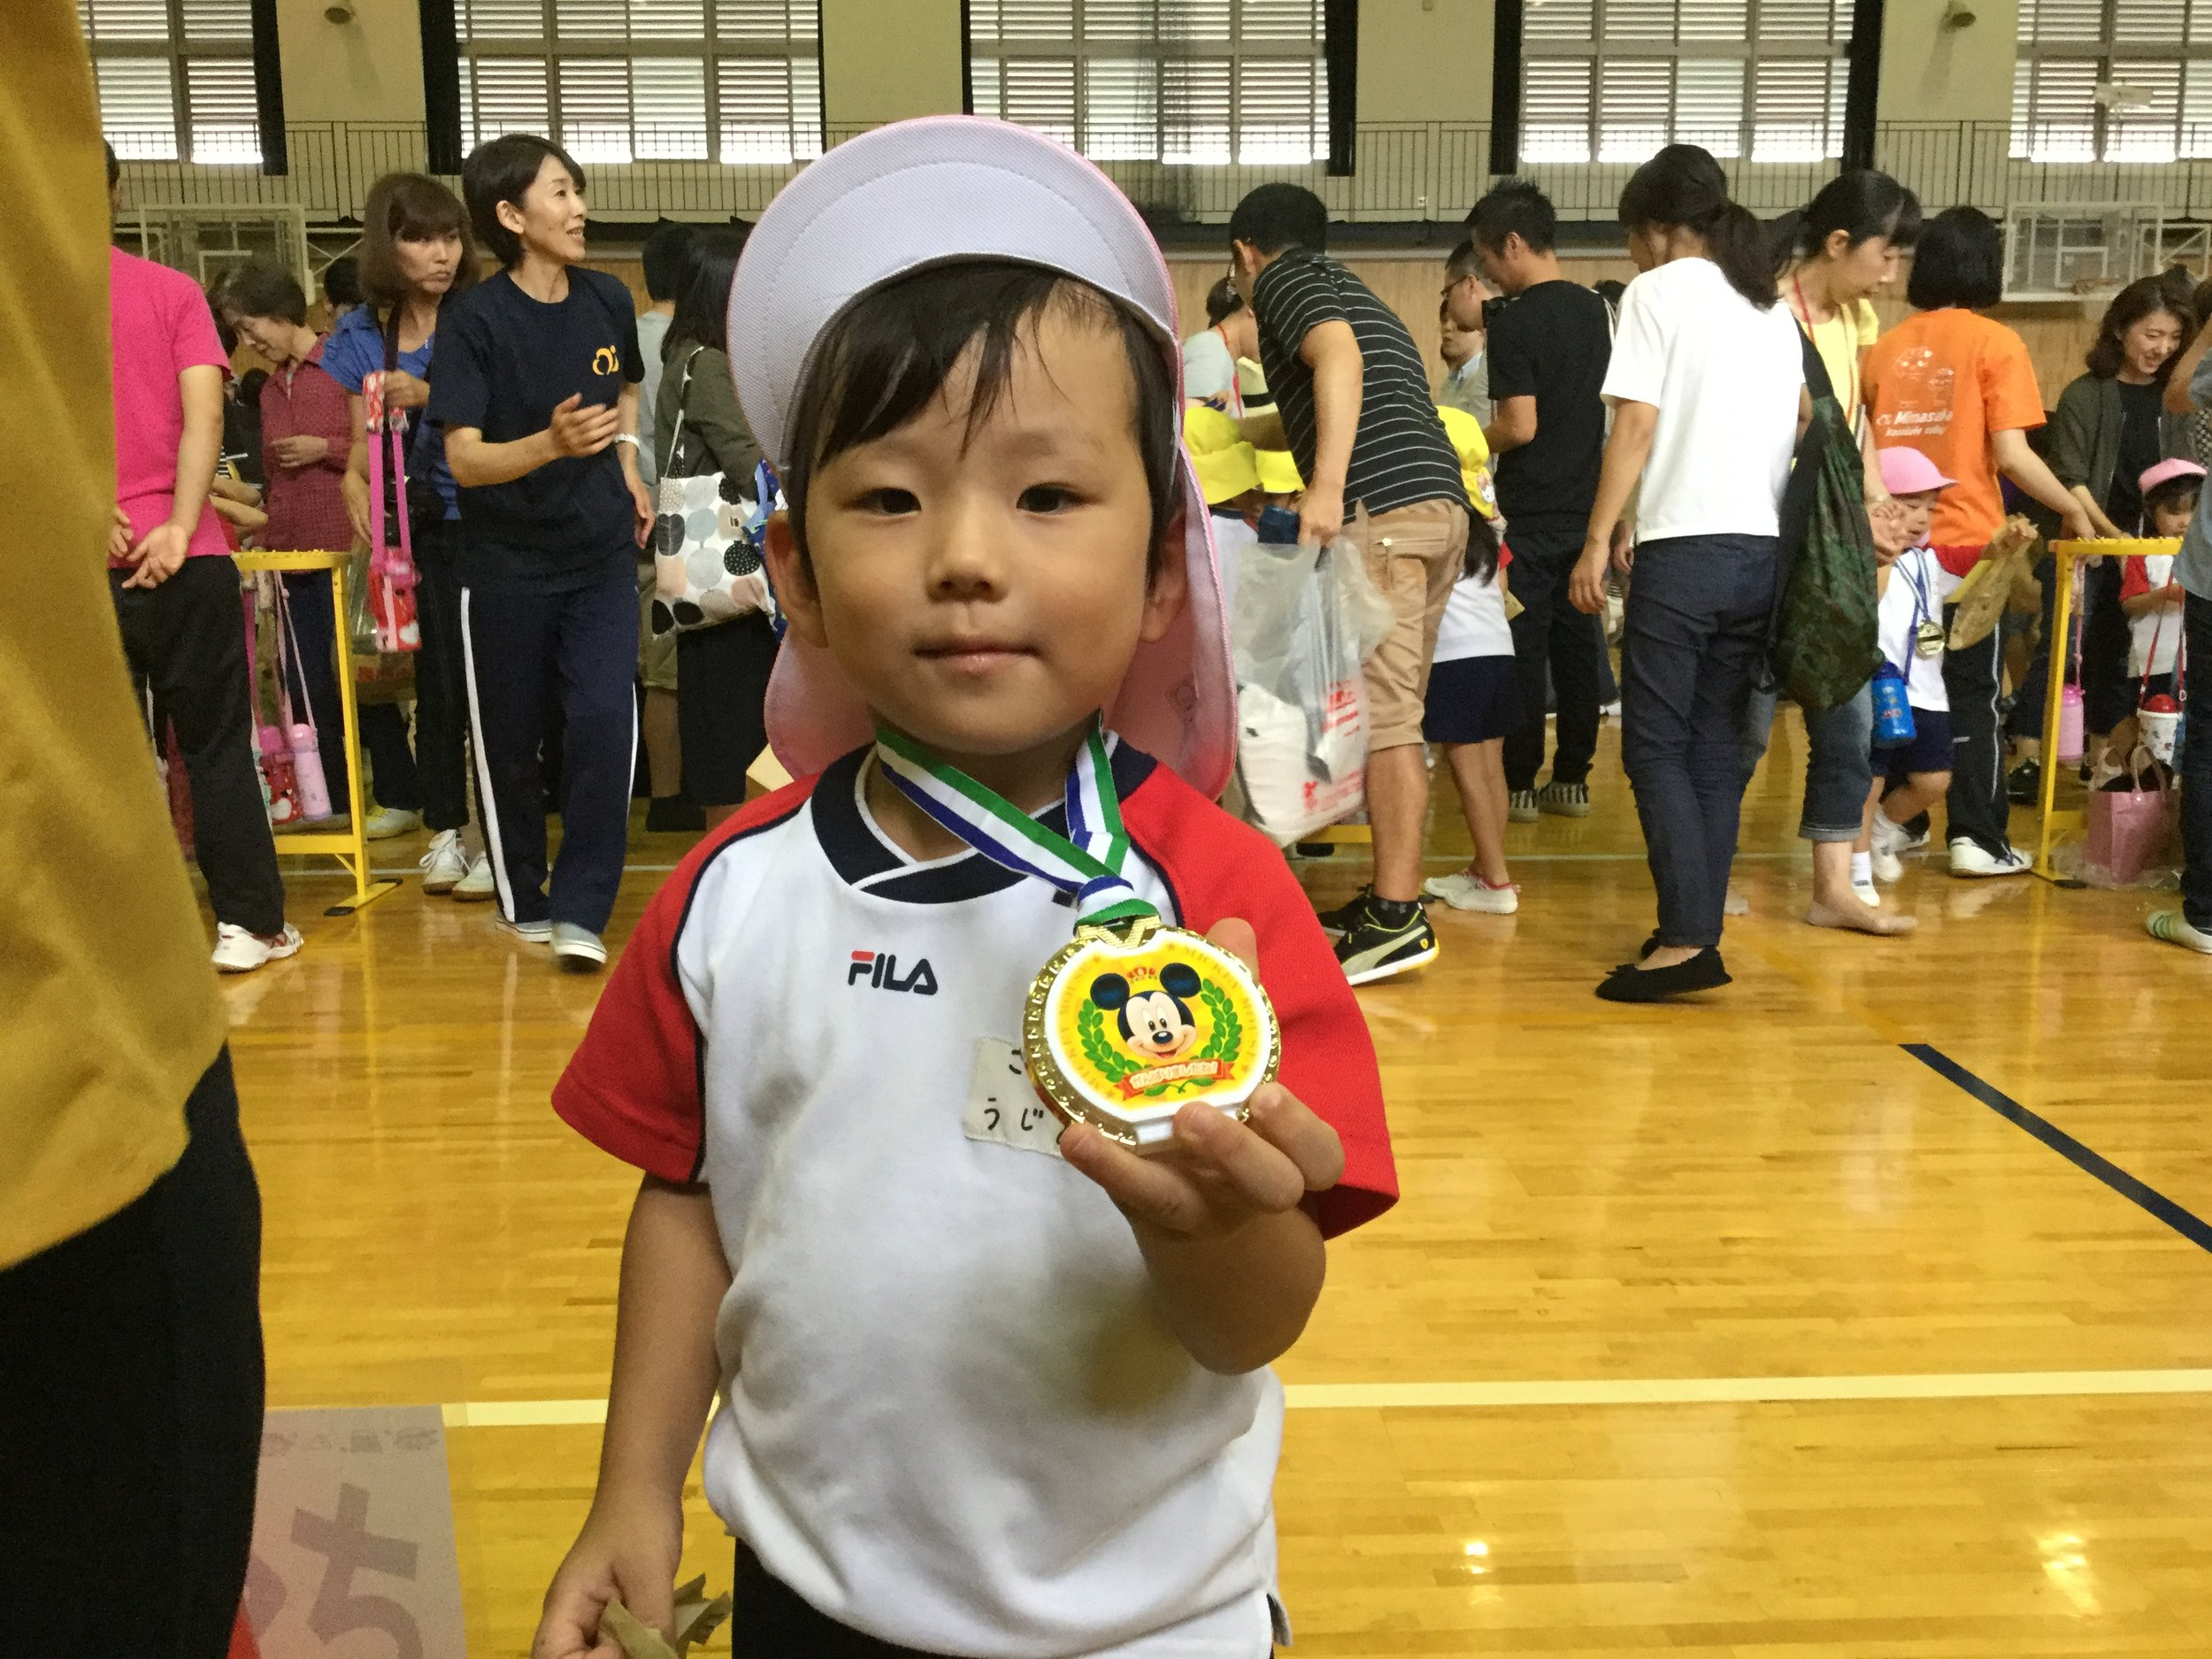 Aito proudly showing his medal.